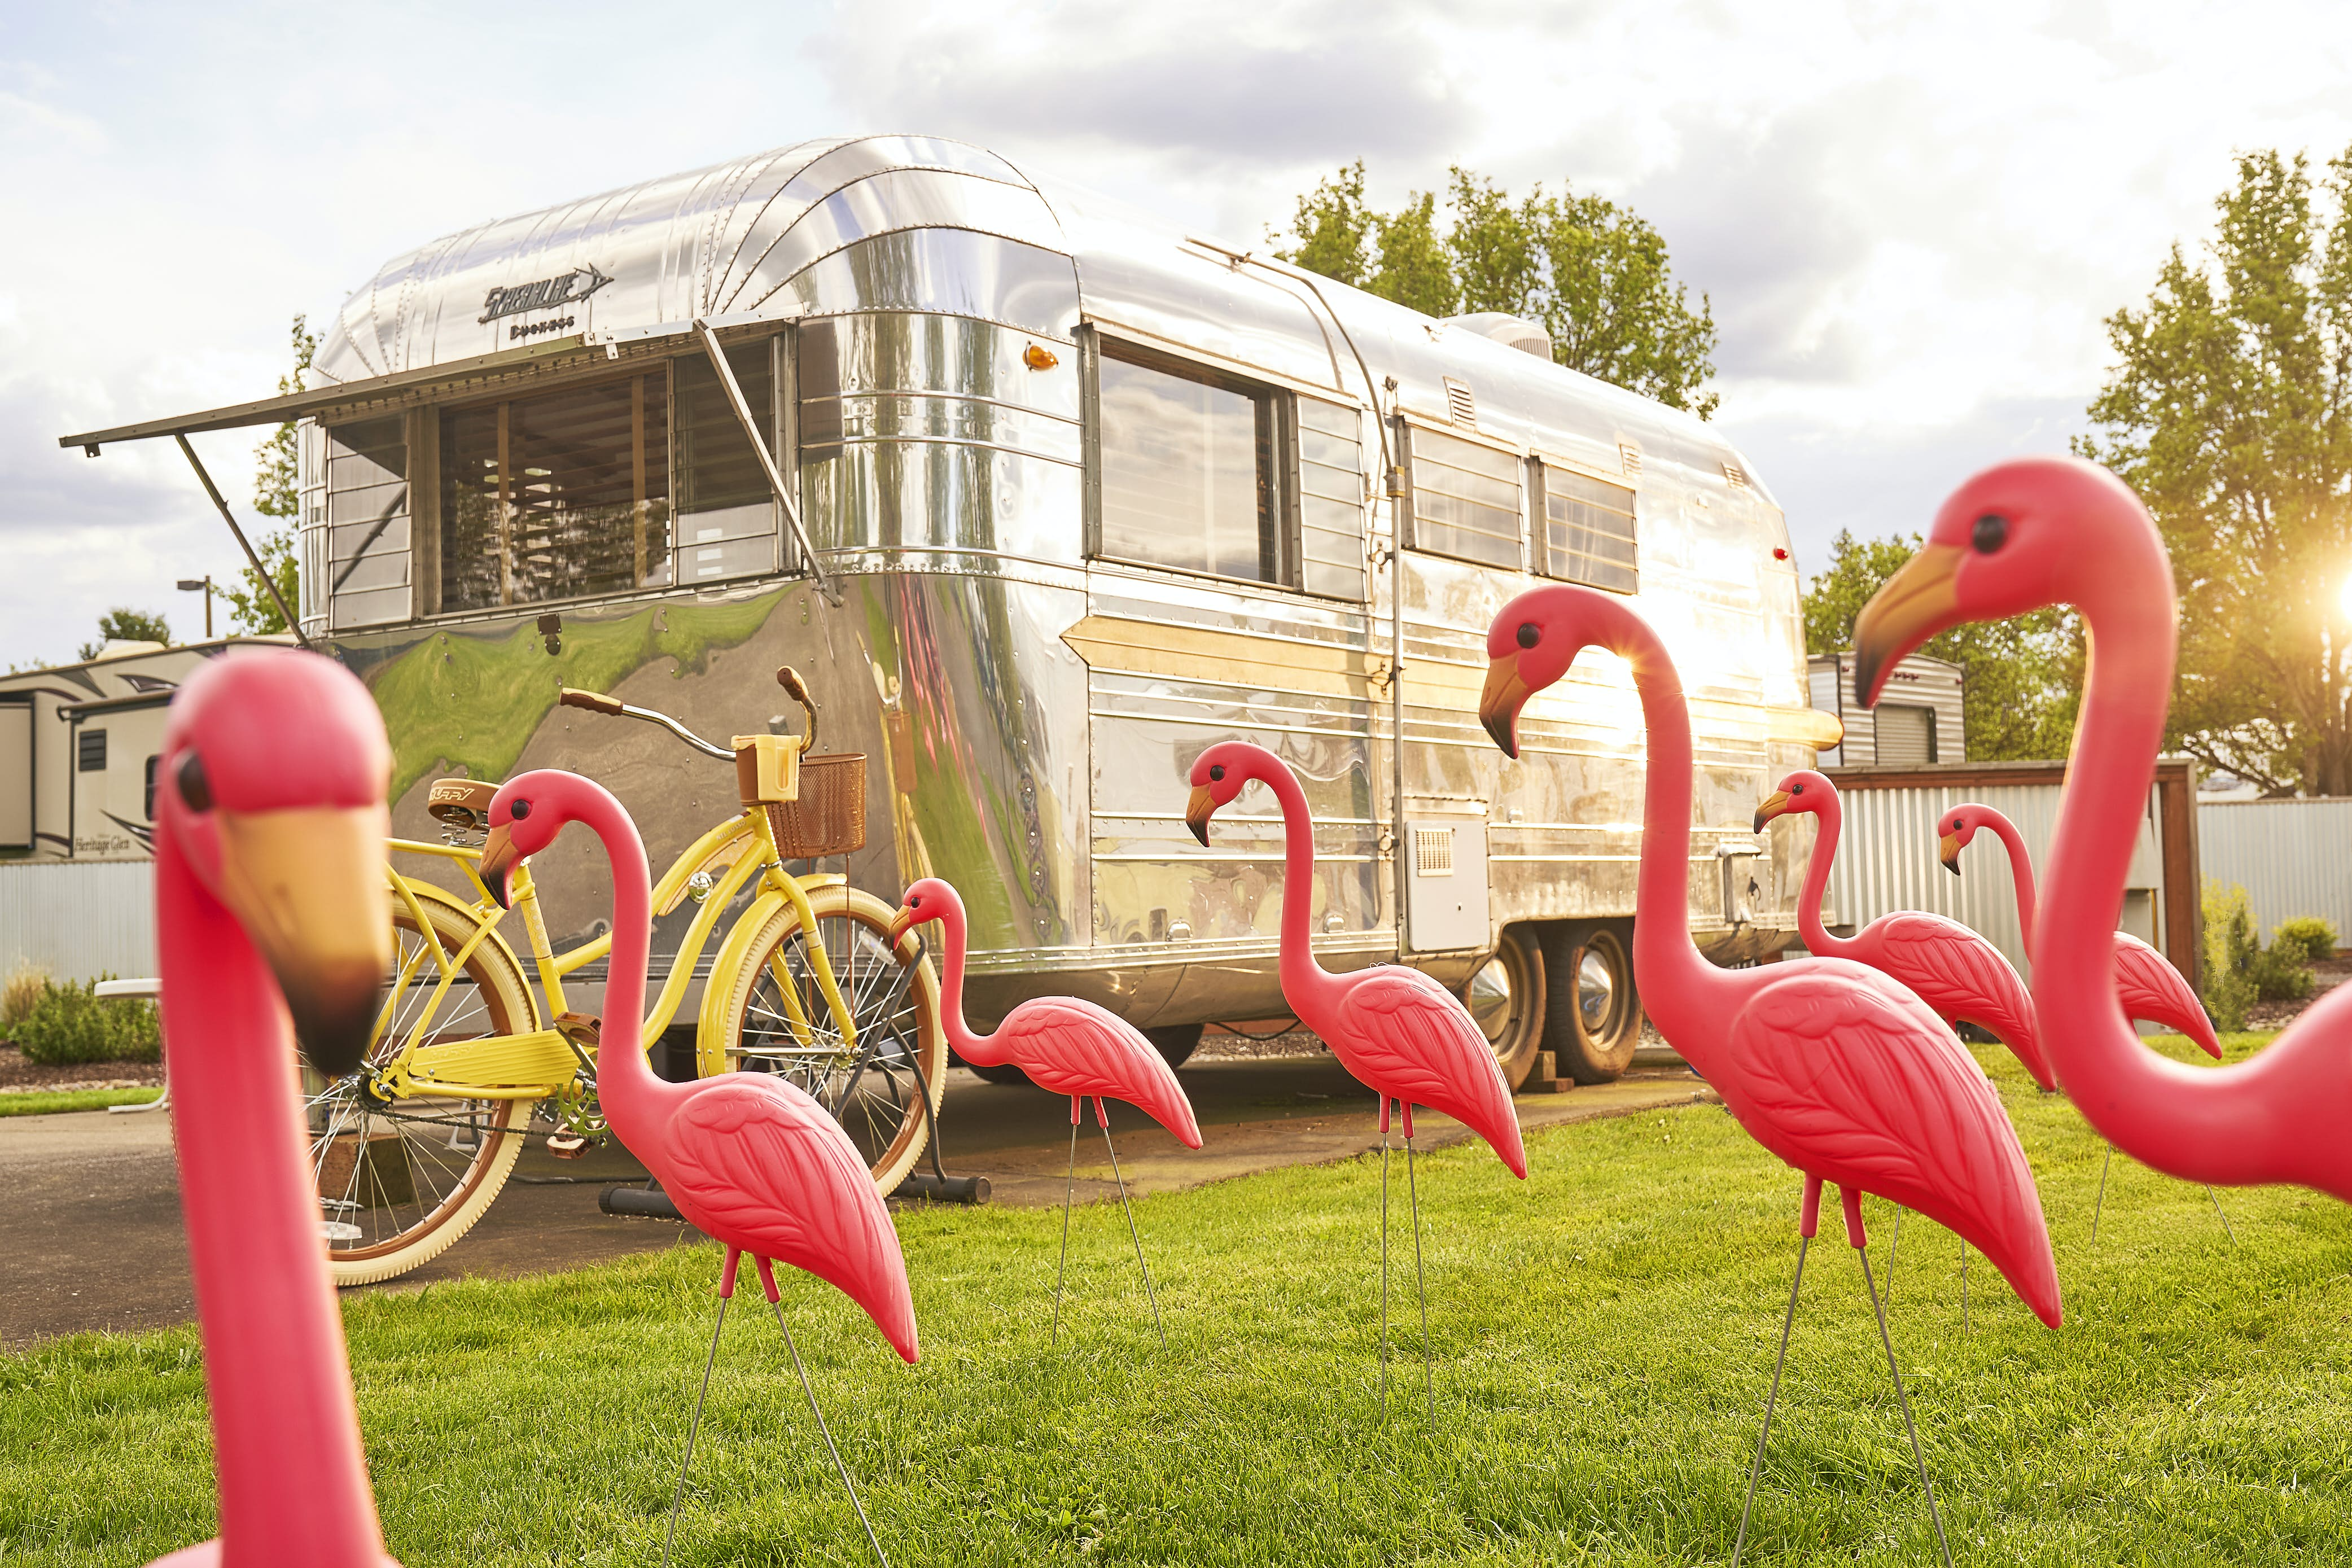 Airstream Caravan Vintage stay in a vintage airstream at these quirky caravan hotels